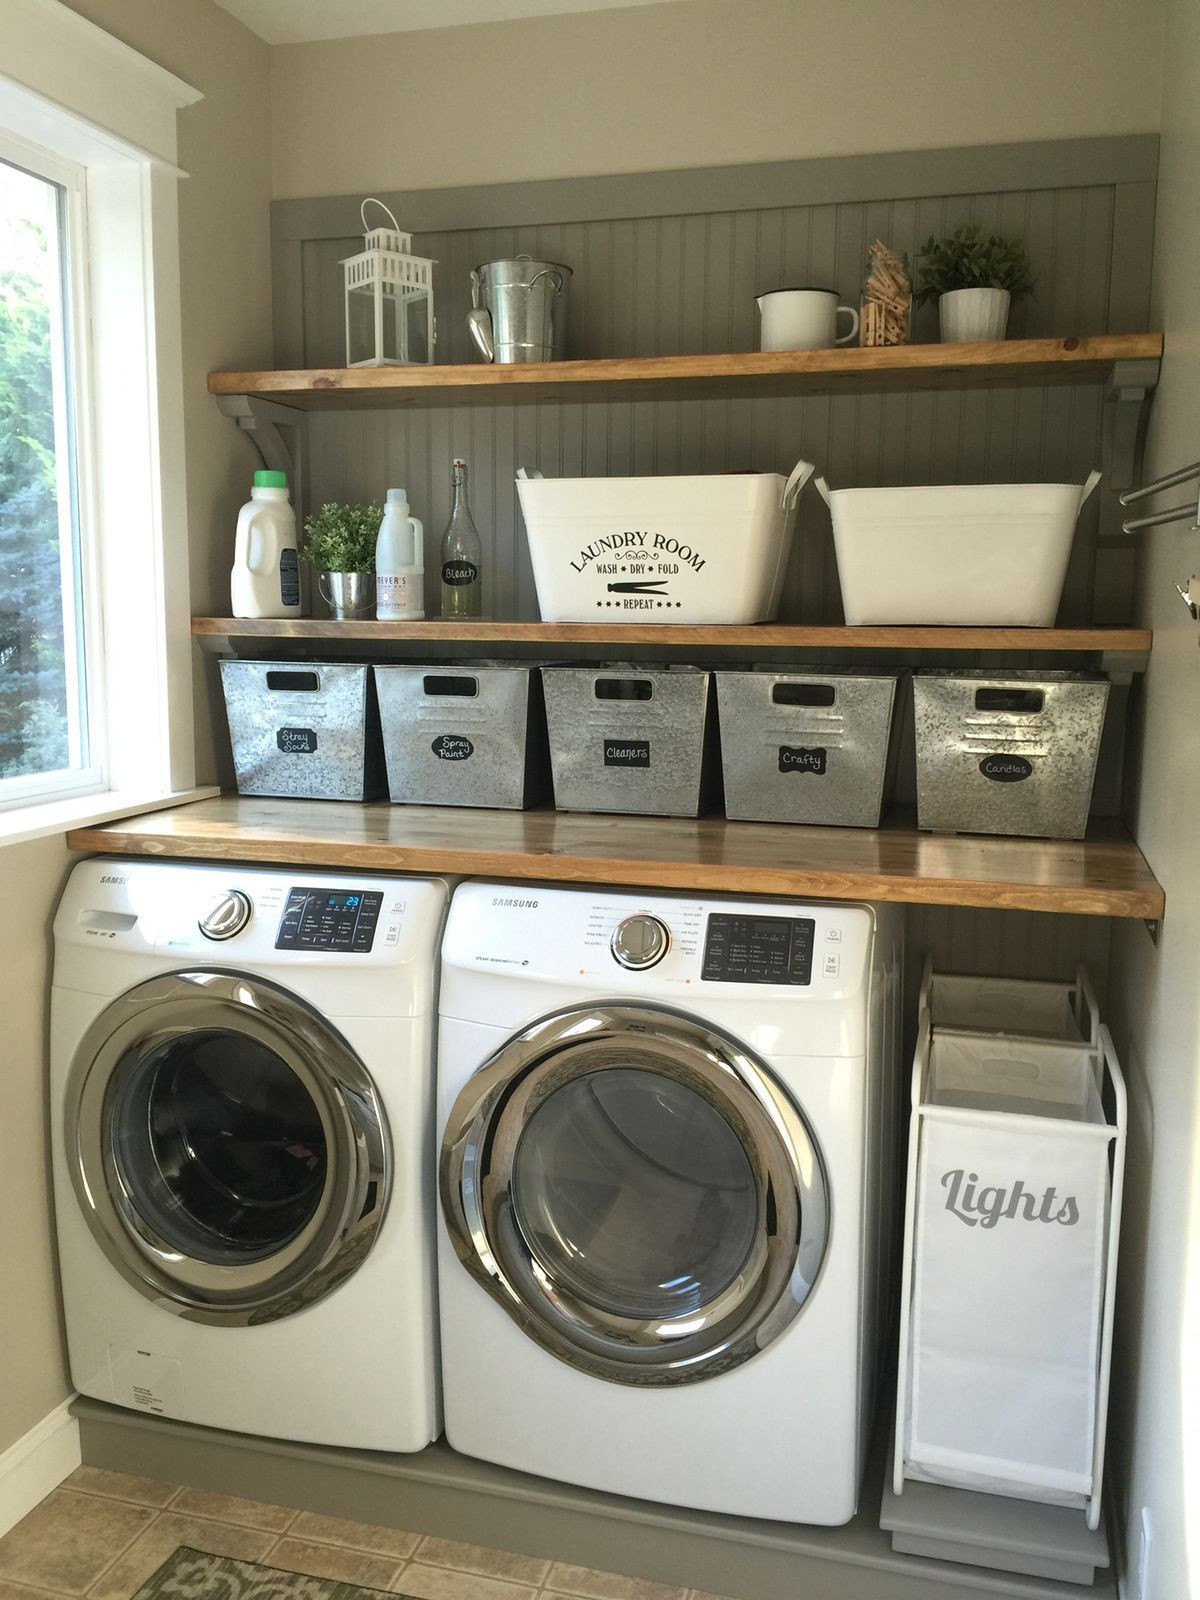 Best ideas about Small Laundry Room Storage Ideas . Save or Pin 23 Small Laundry Room Storage Ideas decoratoo Now.